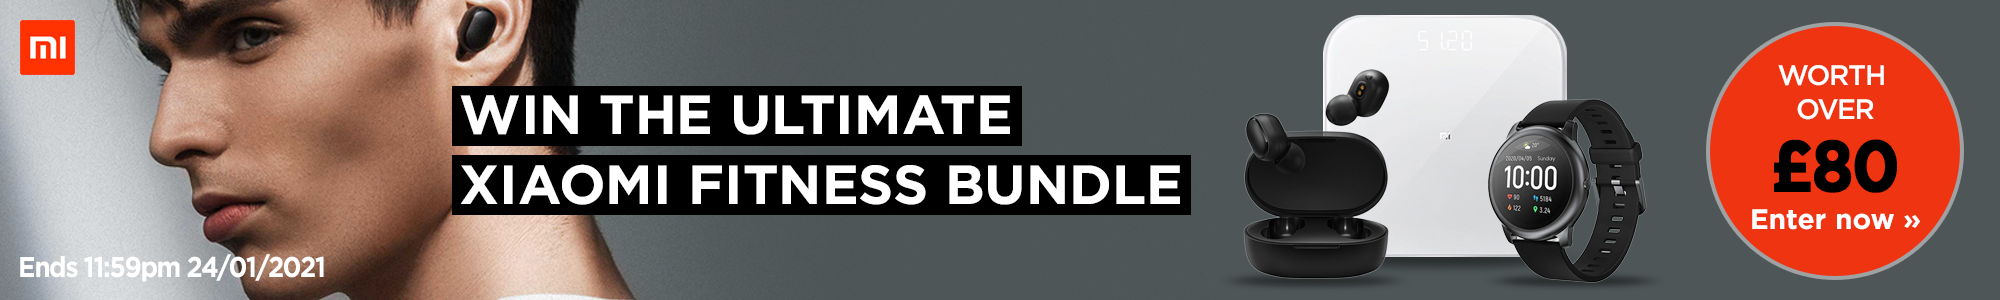 Enter our giveaway to win the ultimate fitness bundle from Xiaomi